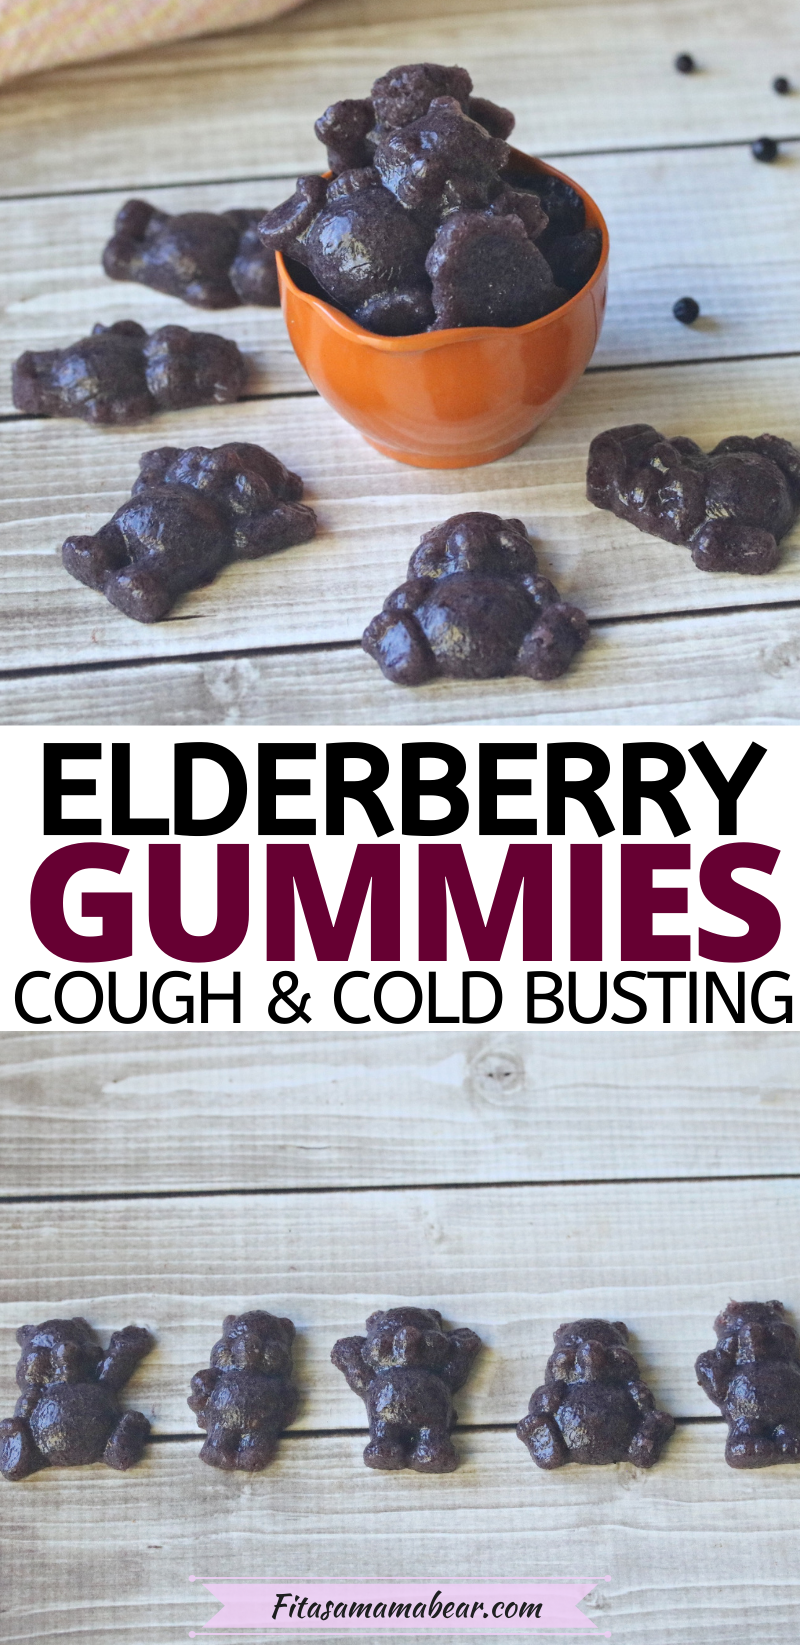 Pinterest image with text: top image of 3 gummies and bottom image of multiple lined up in a row